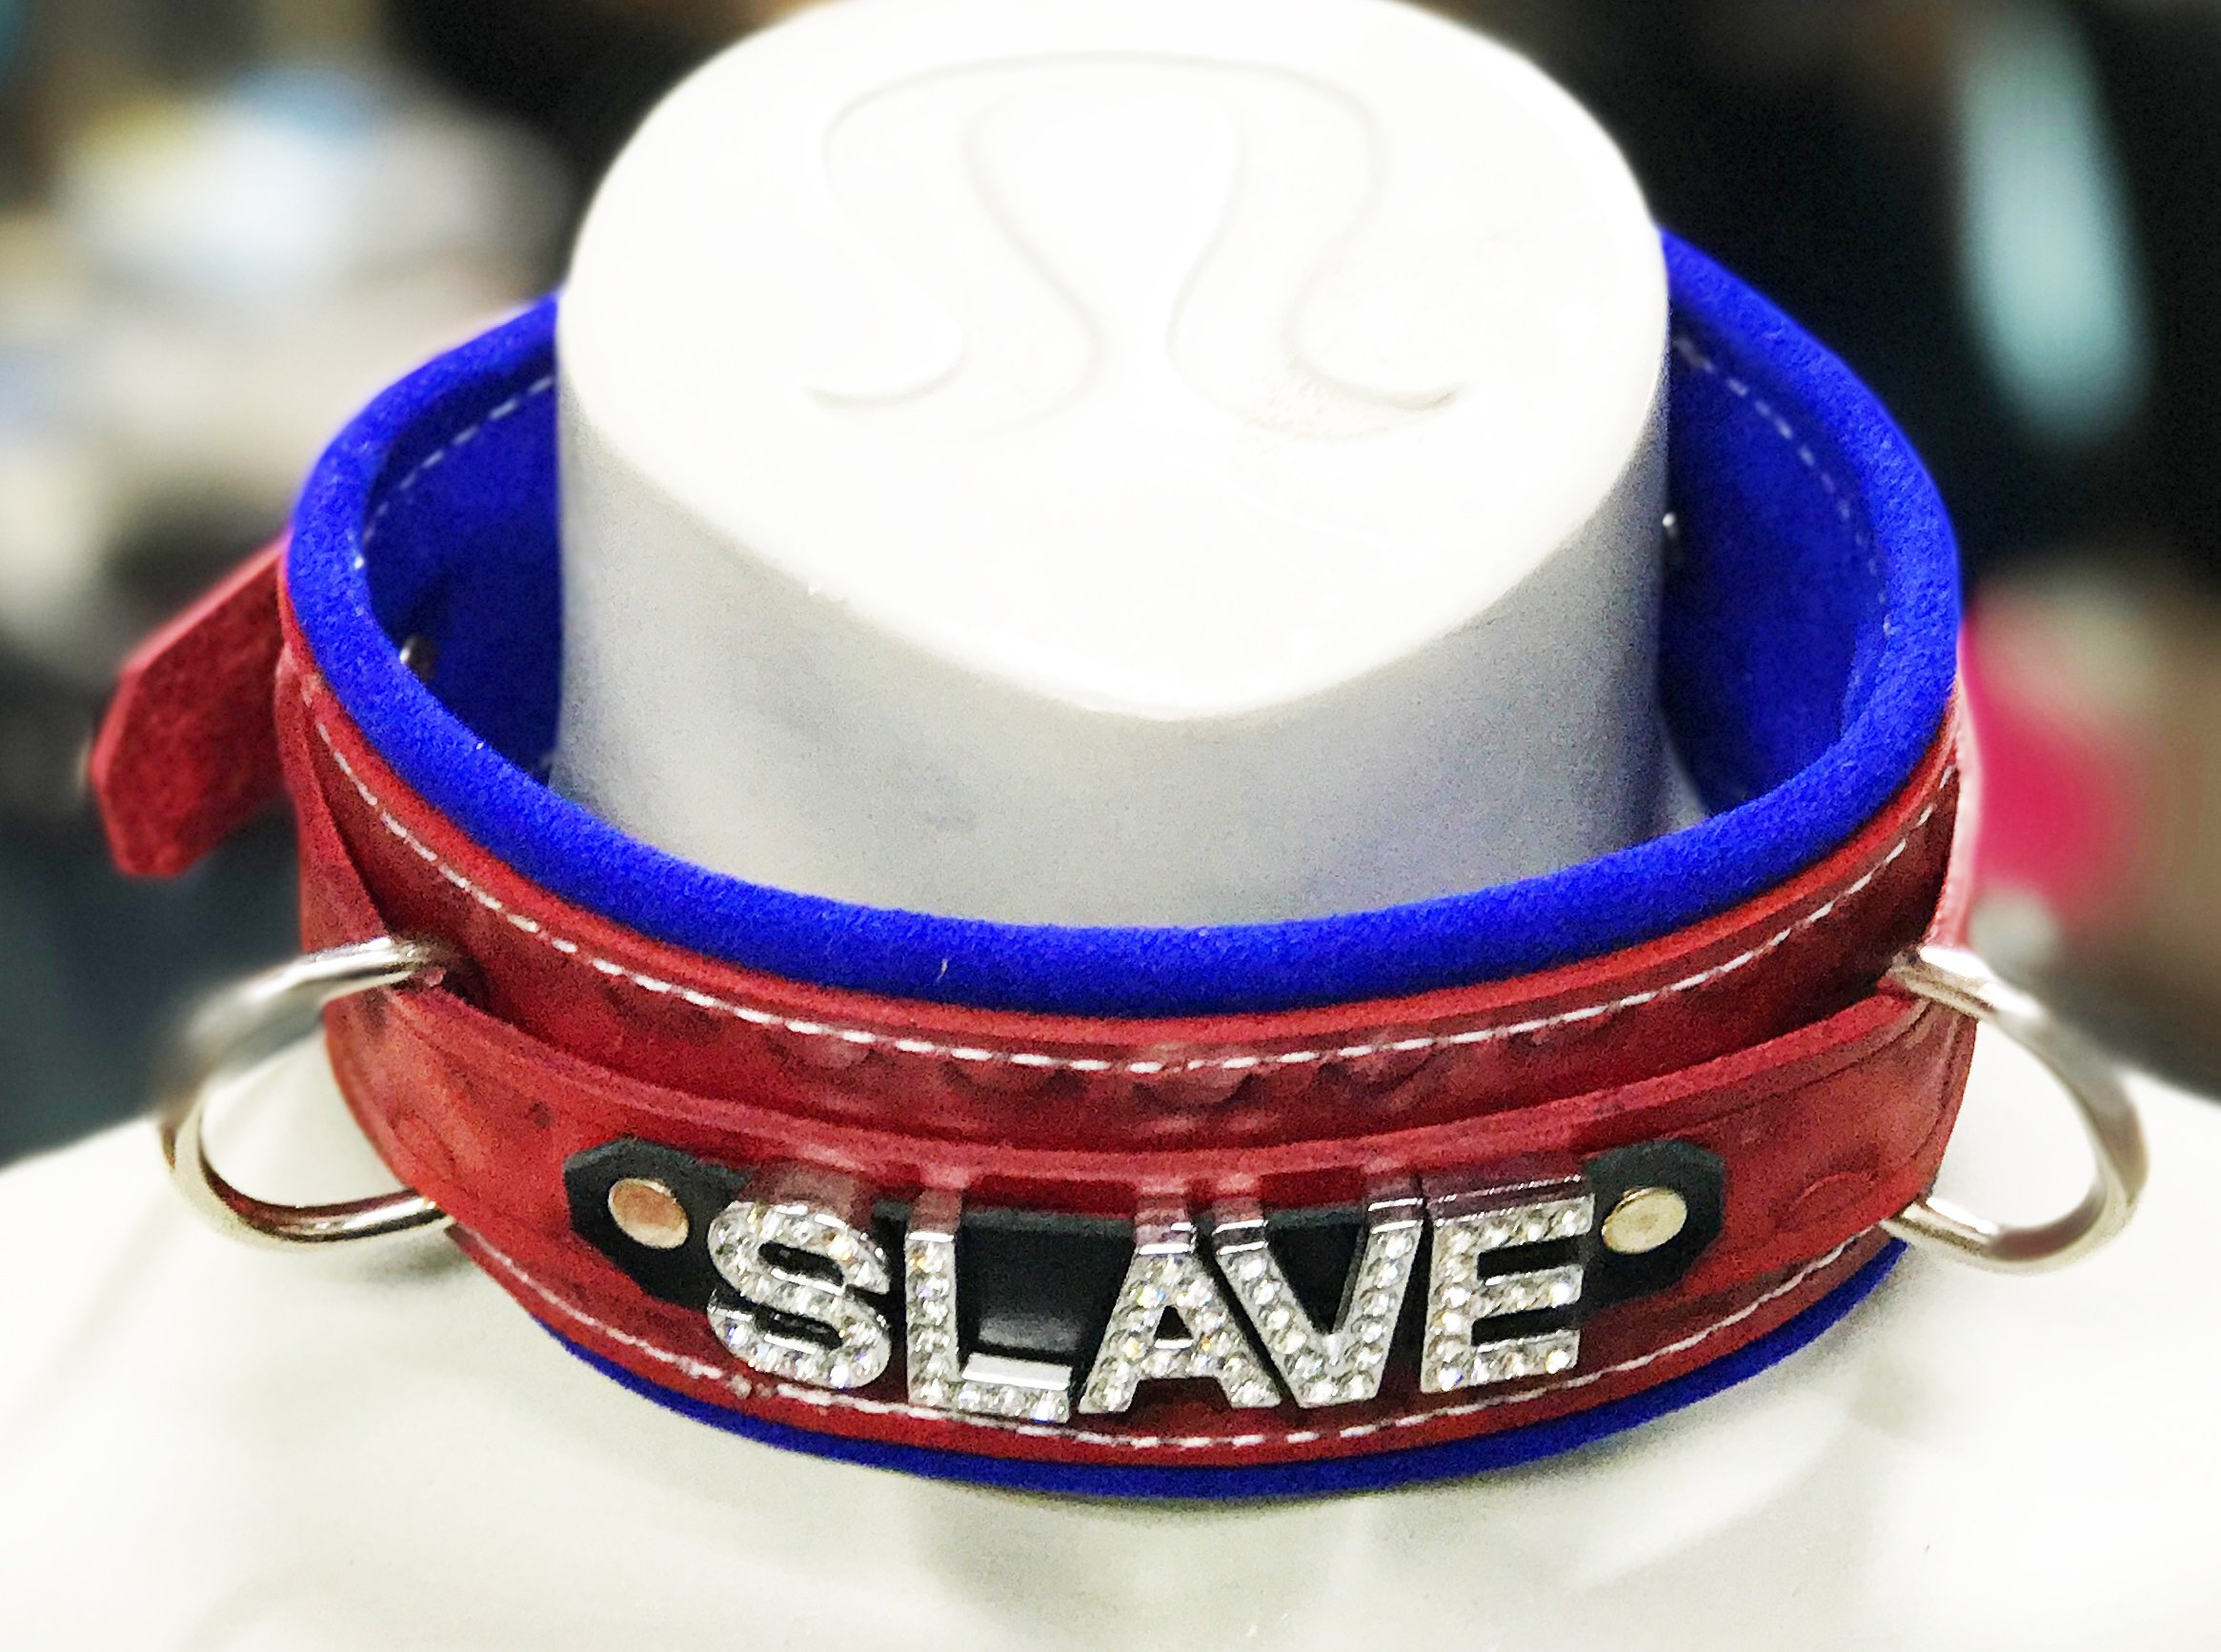 Red and Blue Leather restraint SLAVE collar with soft suede lining